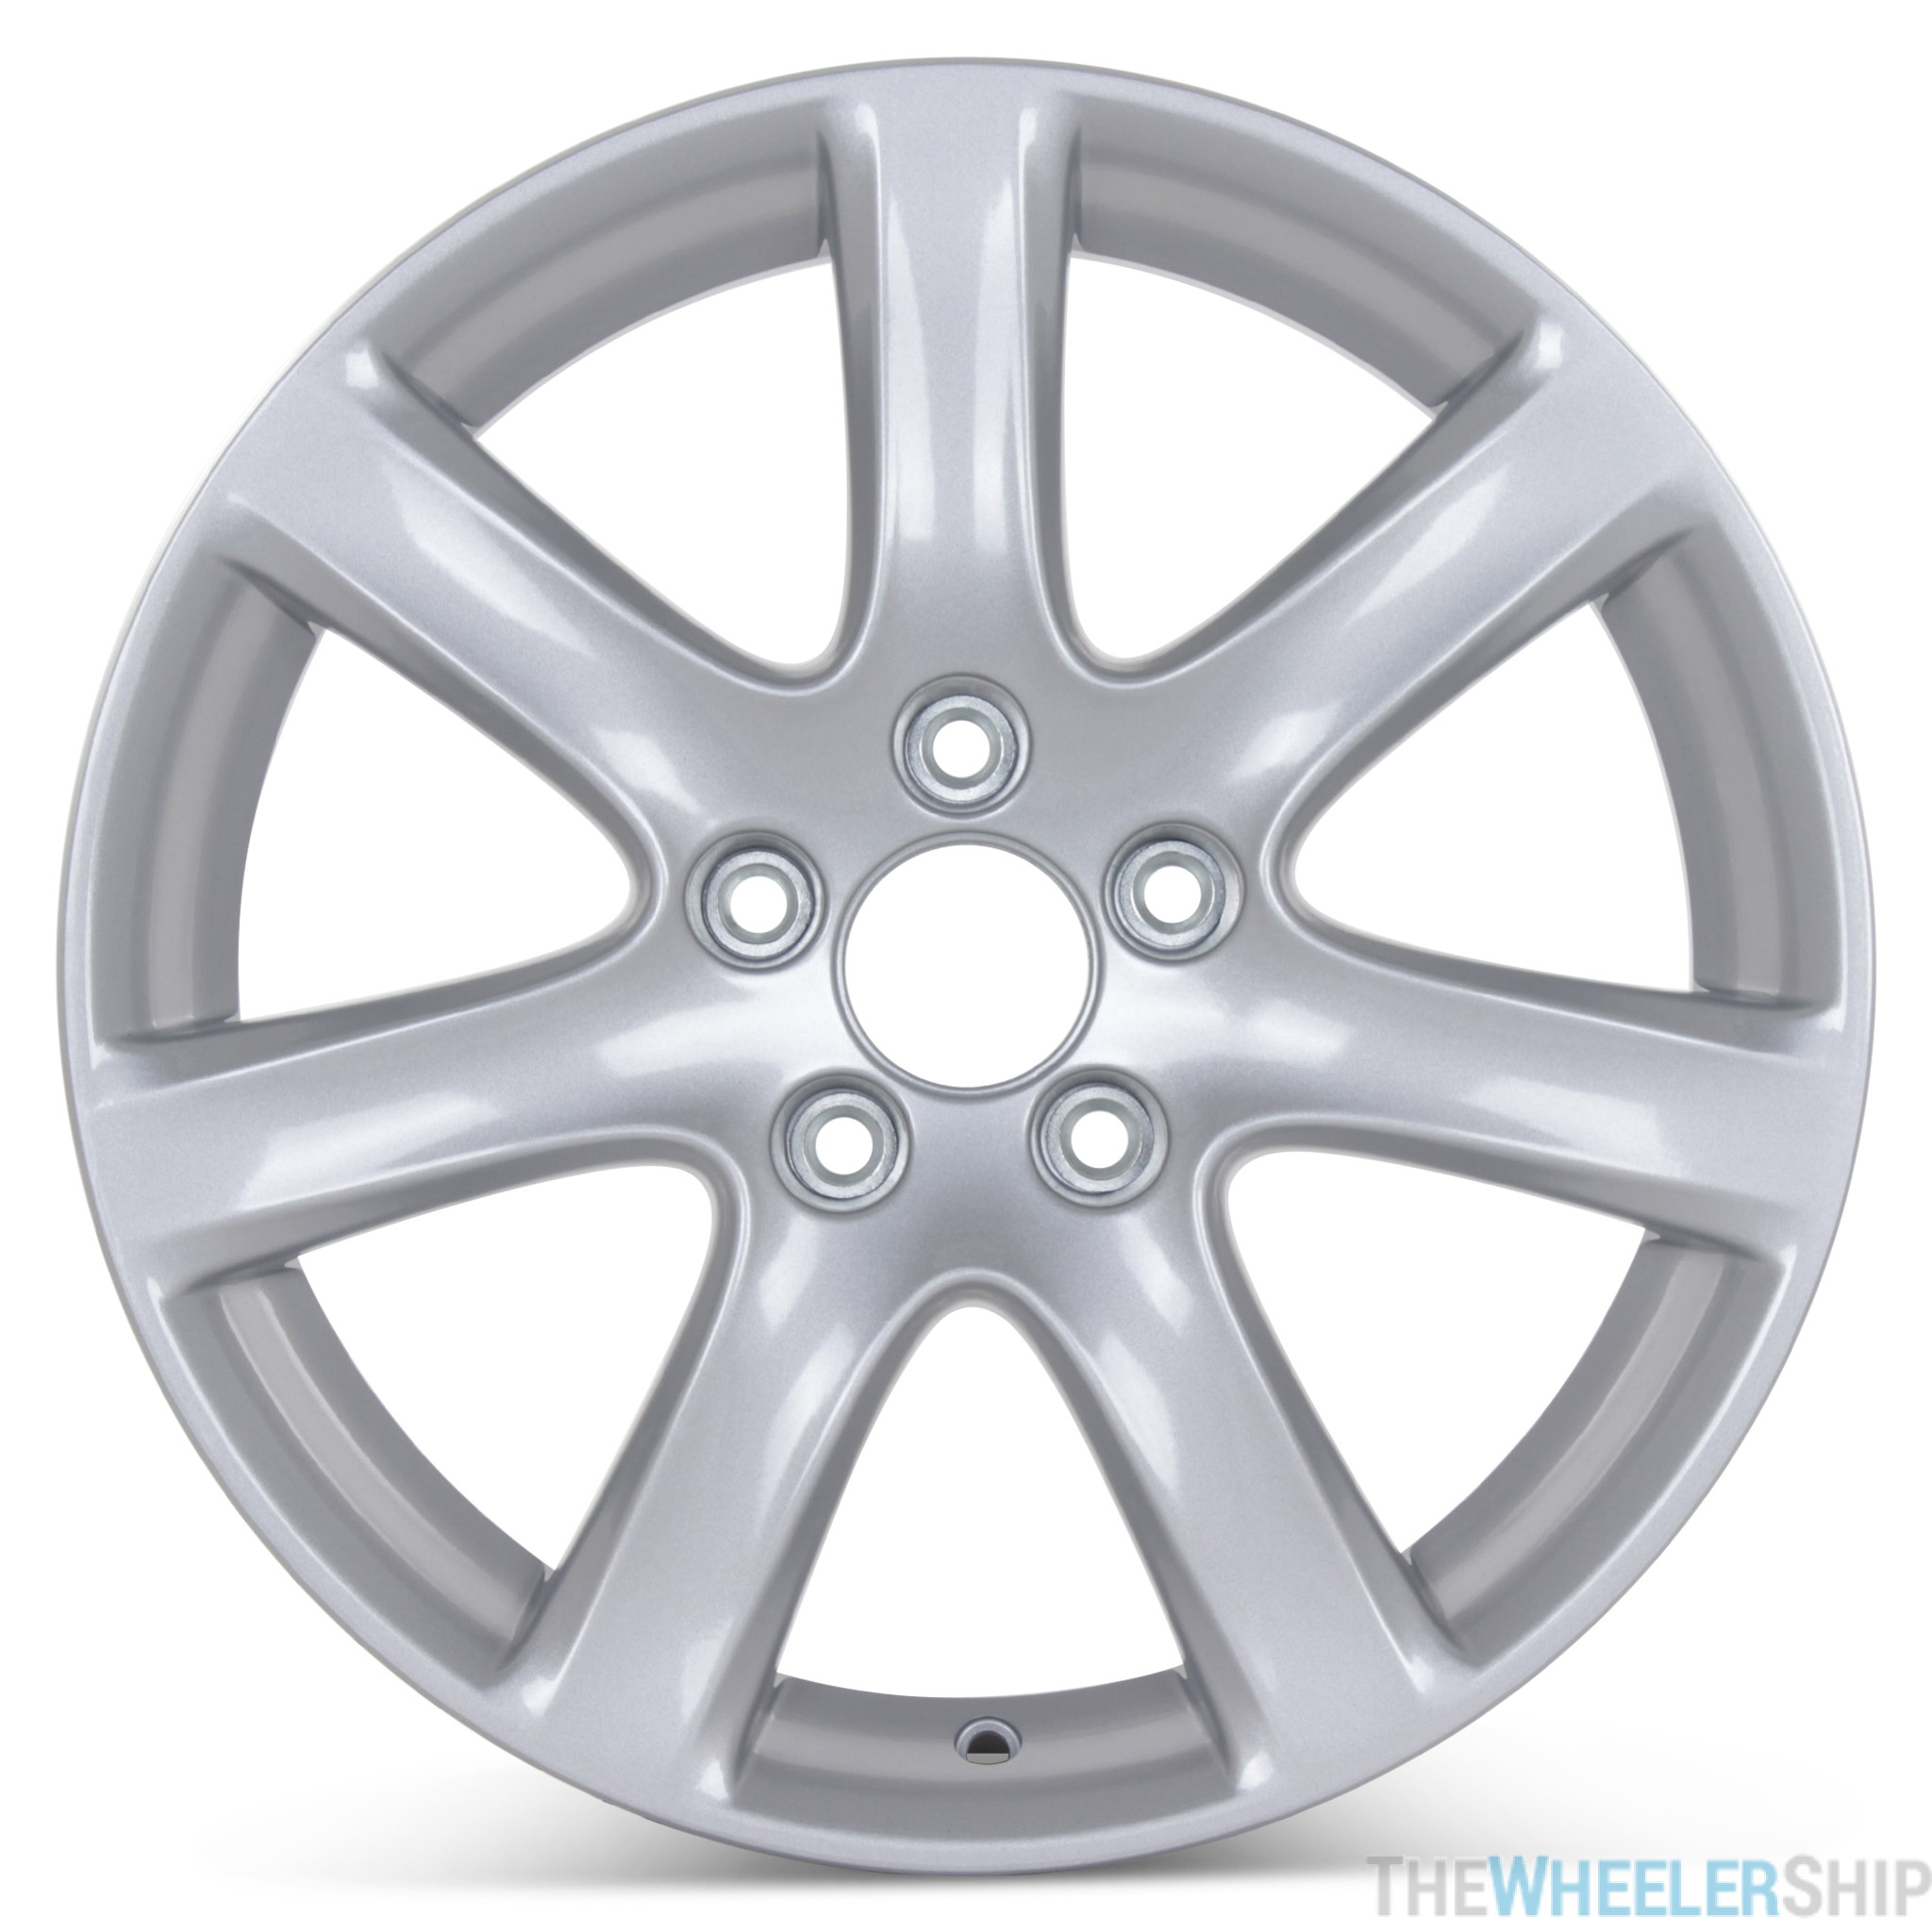 2004-2005 Acura TSX Wheels For Sale